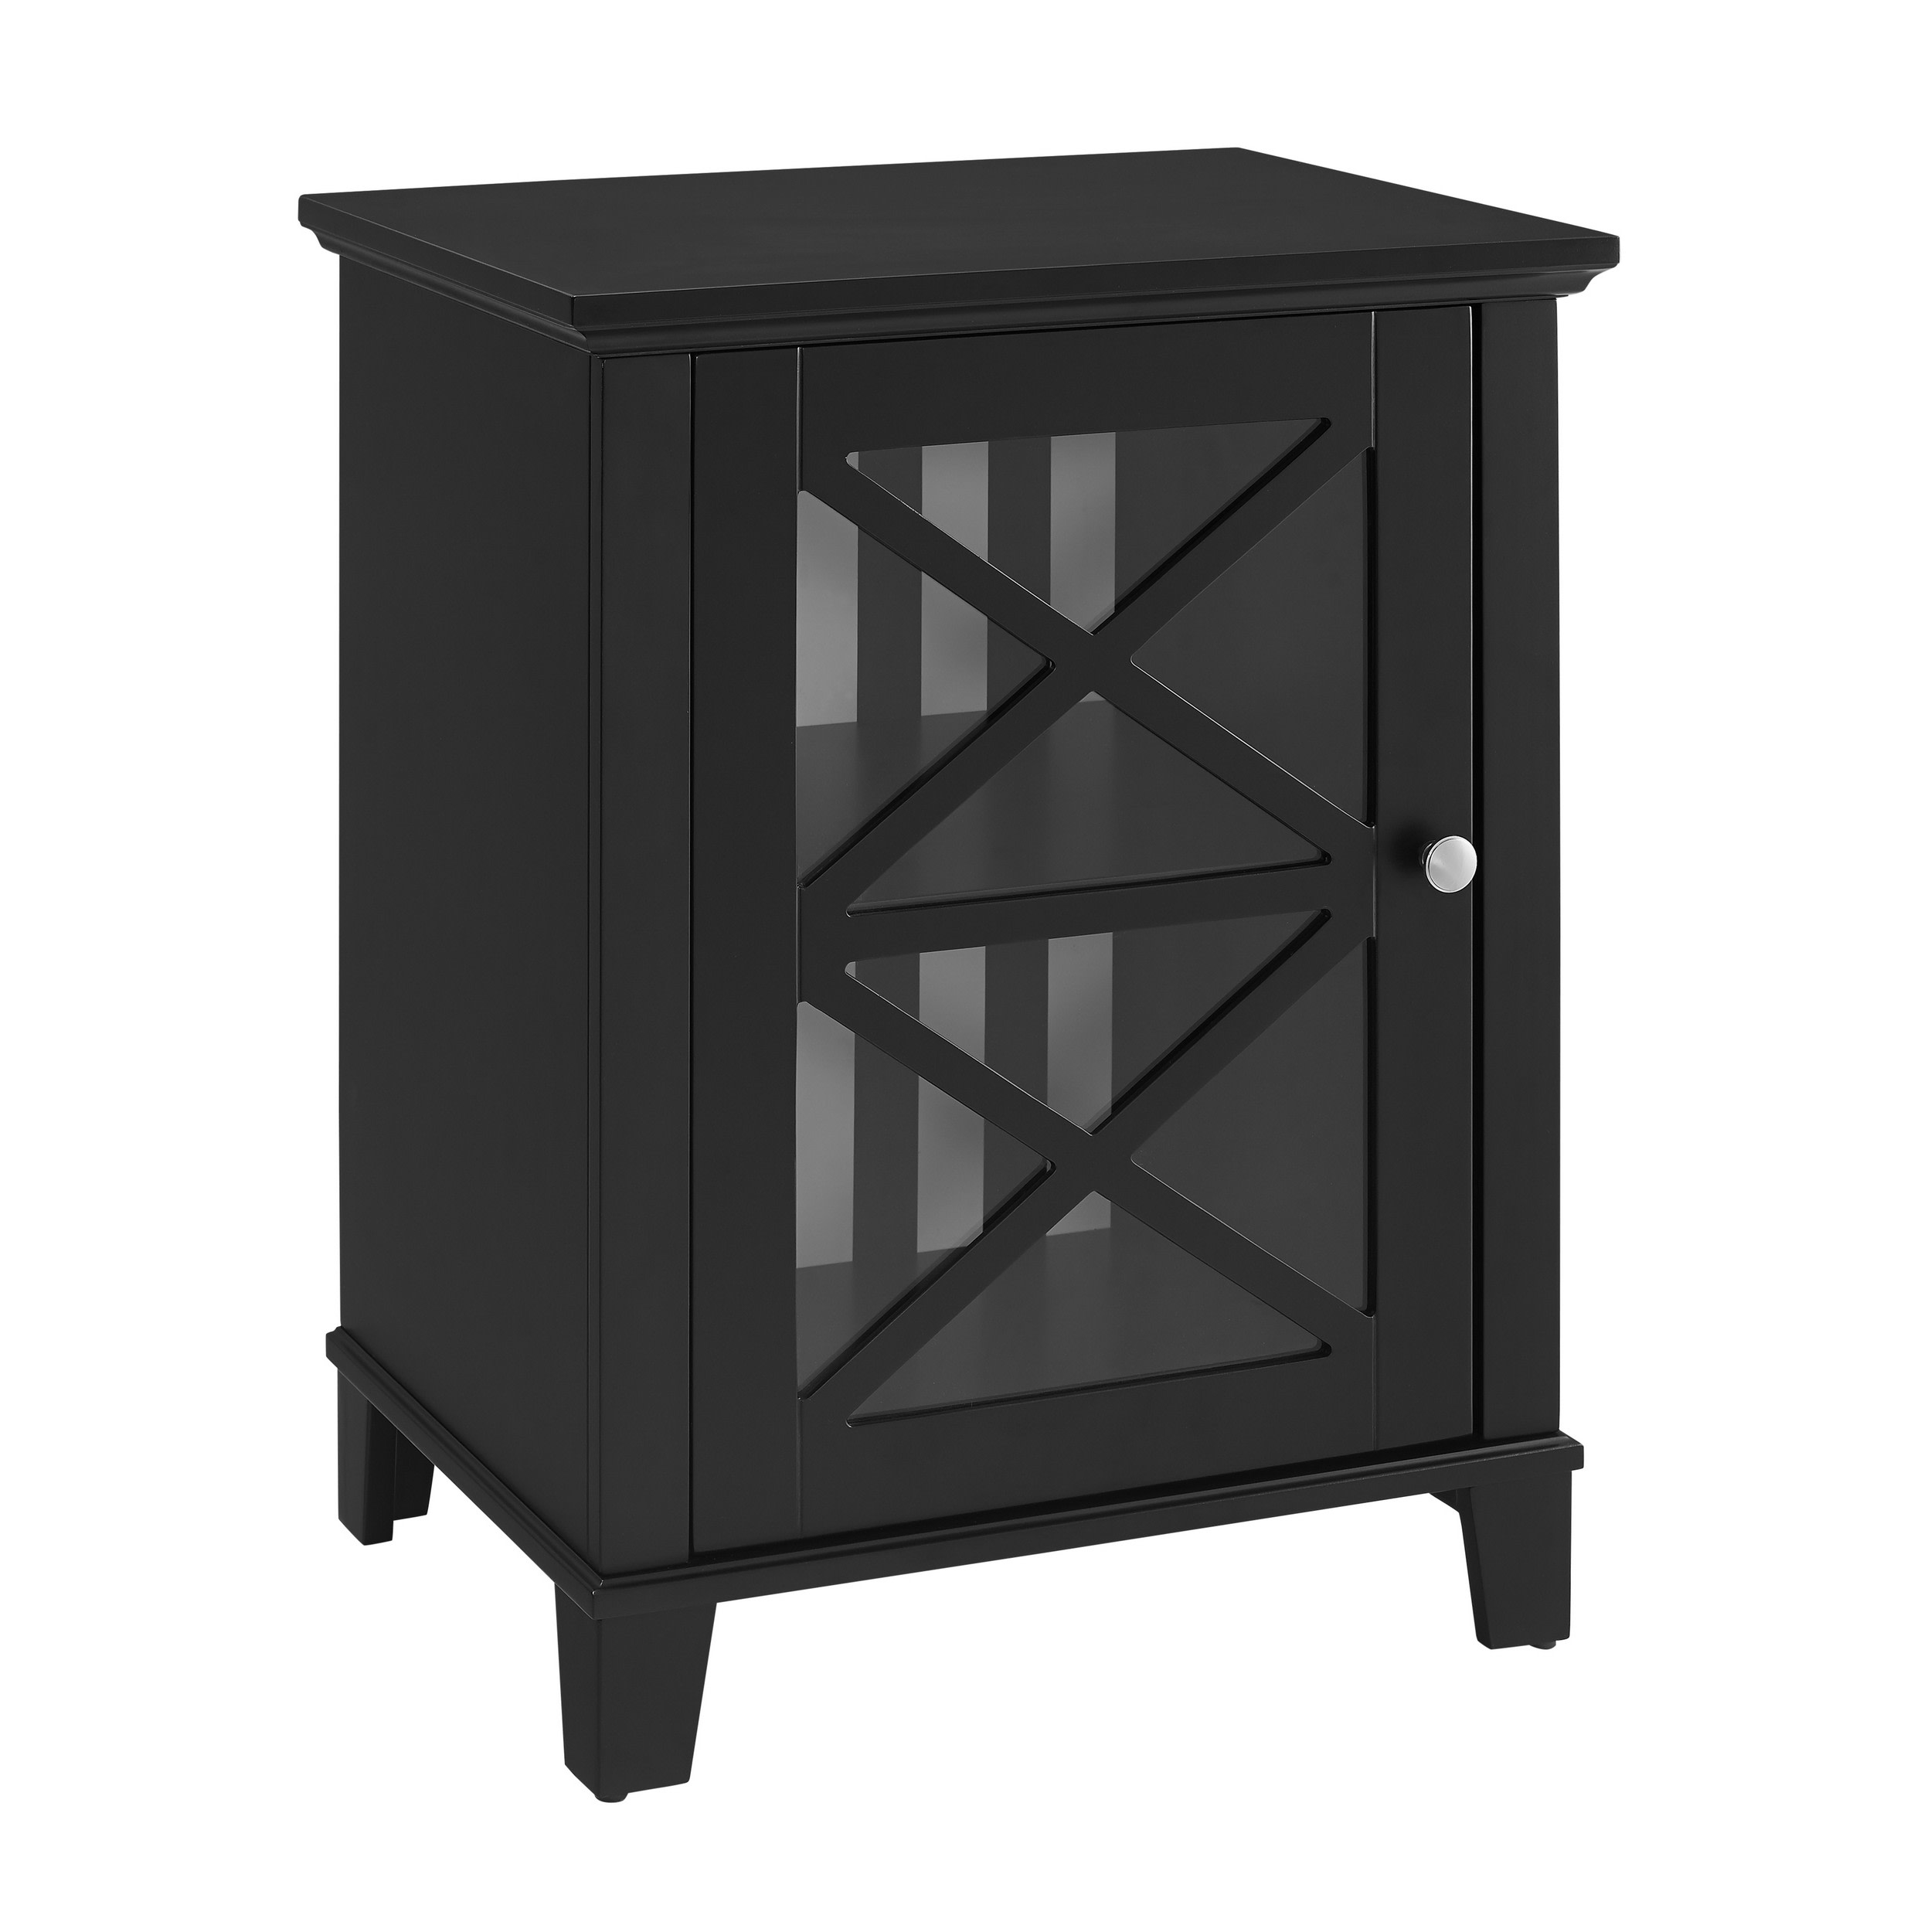 Linon Home Decor Products Inc 650215BLK01U Rapture Black Awning Stripe Small Cabinet